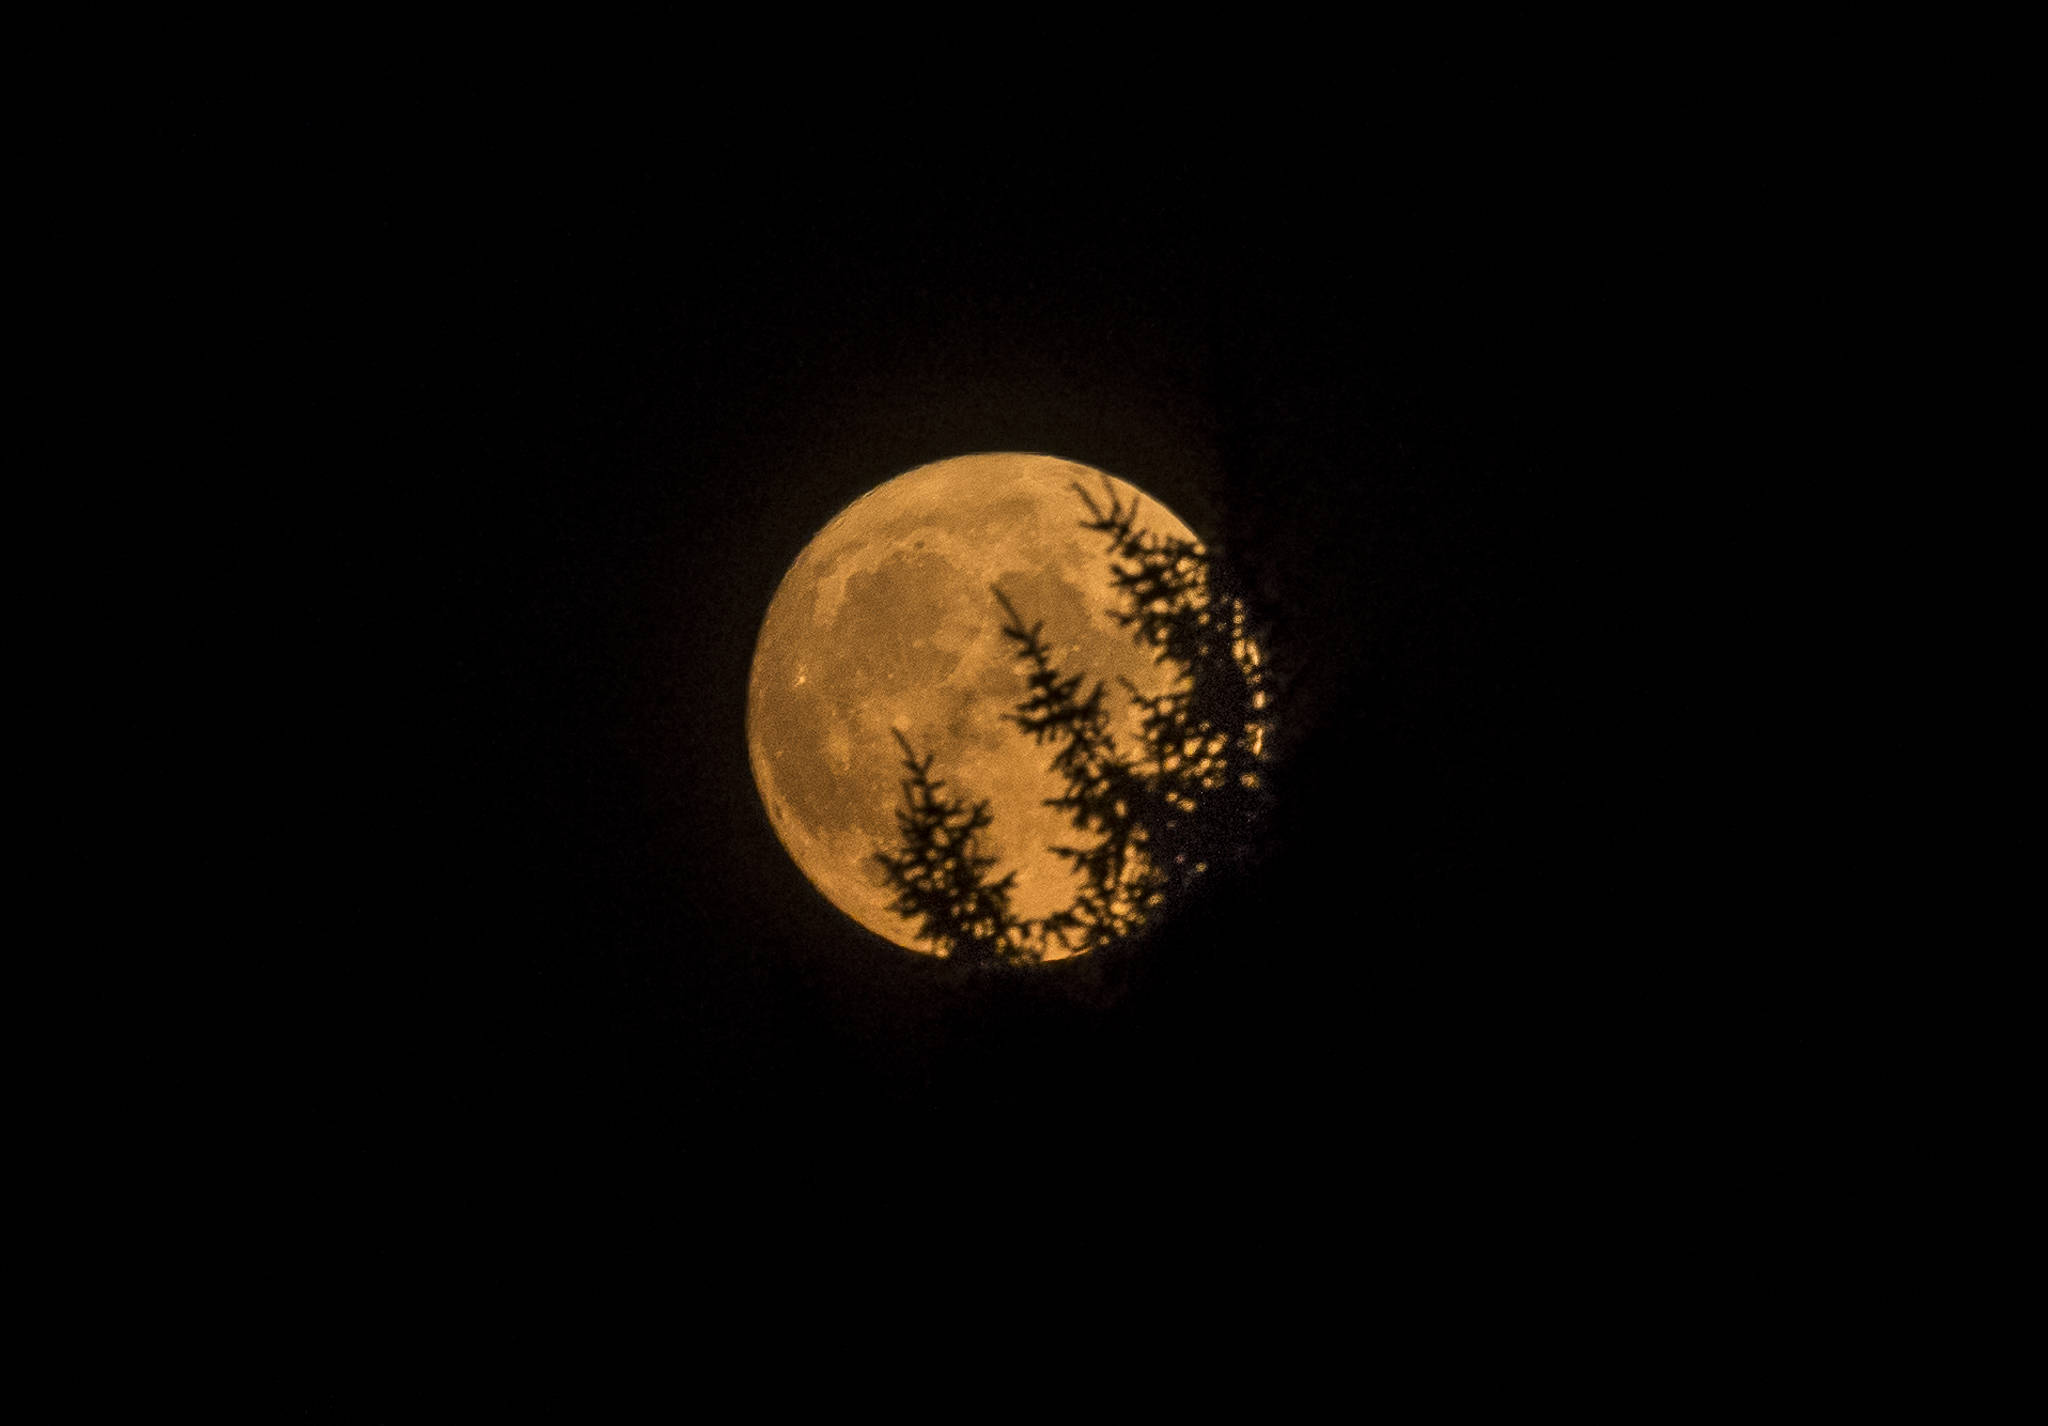 The moon rises over Everett on Wednesday, tinged yellow from high elevation smoke. (Olivia Vanni / The Herald)